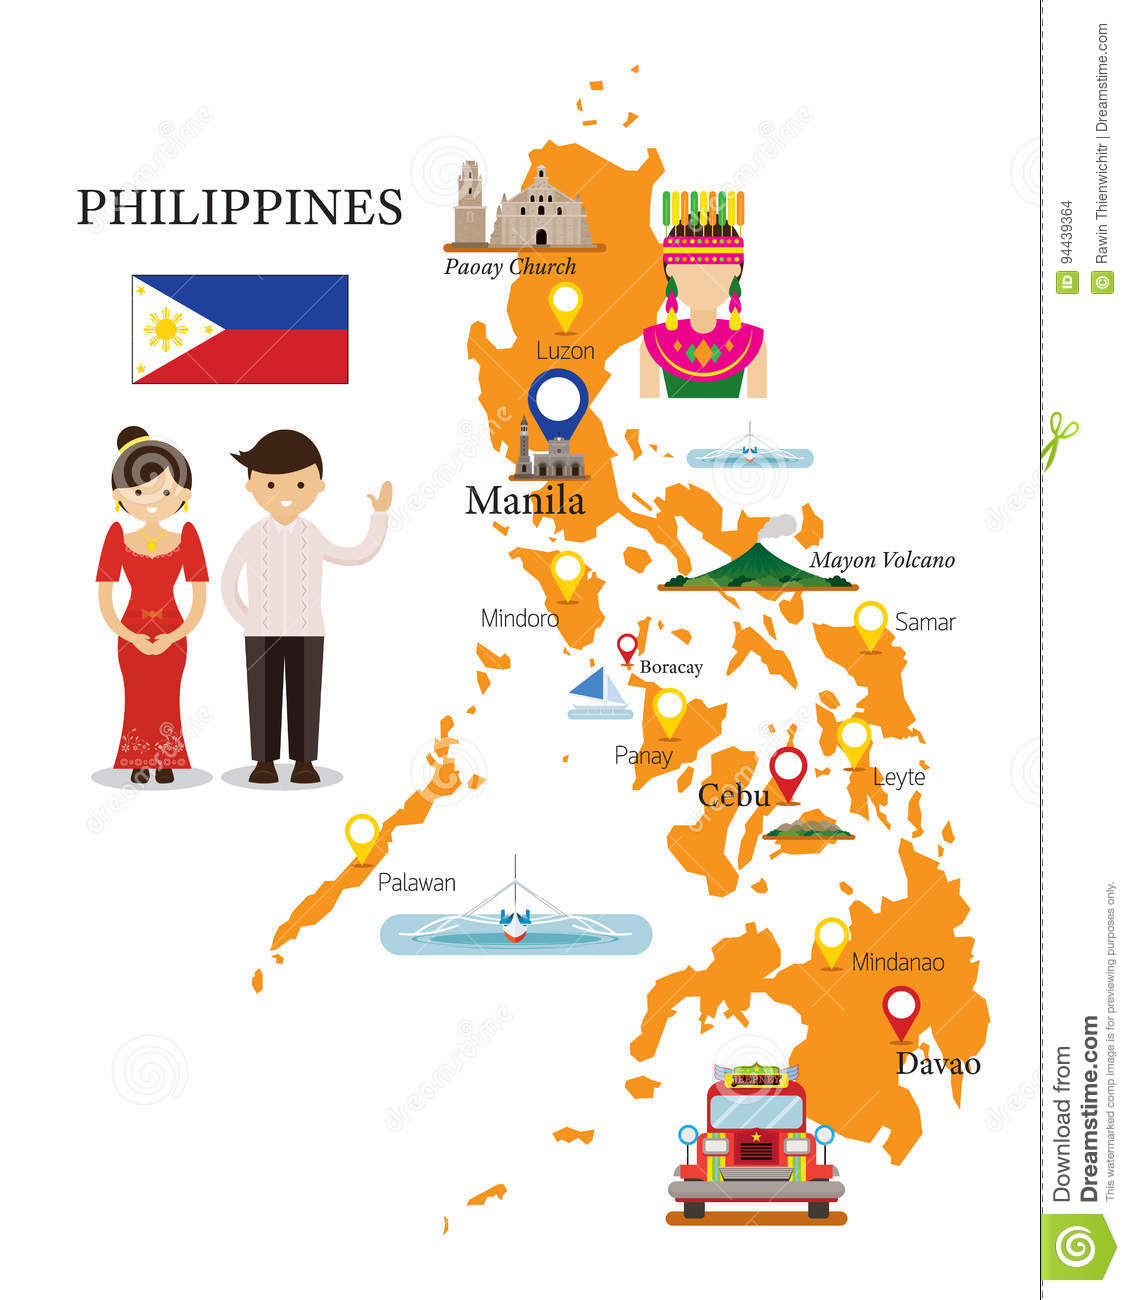 Philippines Map and Landmarks with People in Traditional Clothing